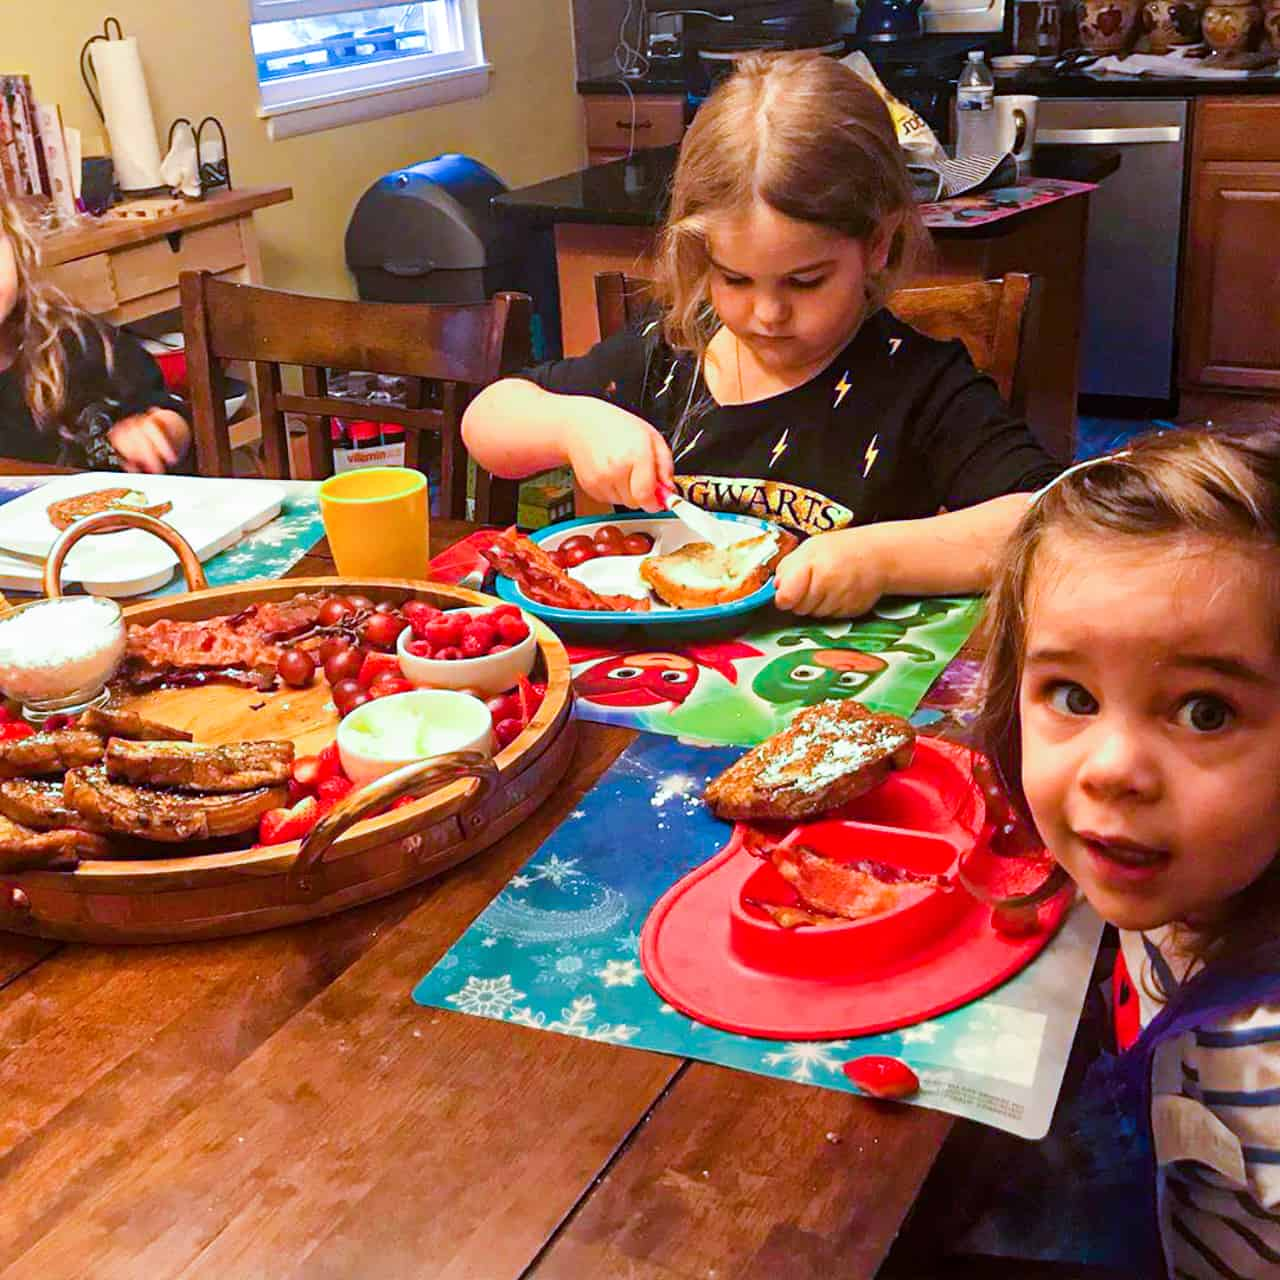 children eating breakfast at the kitchen table